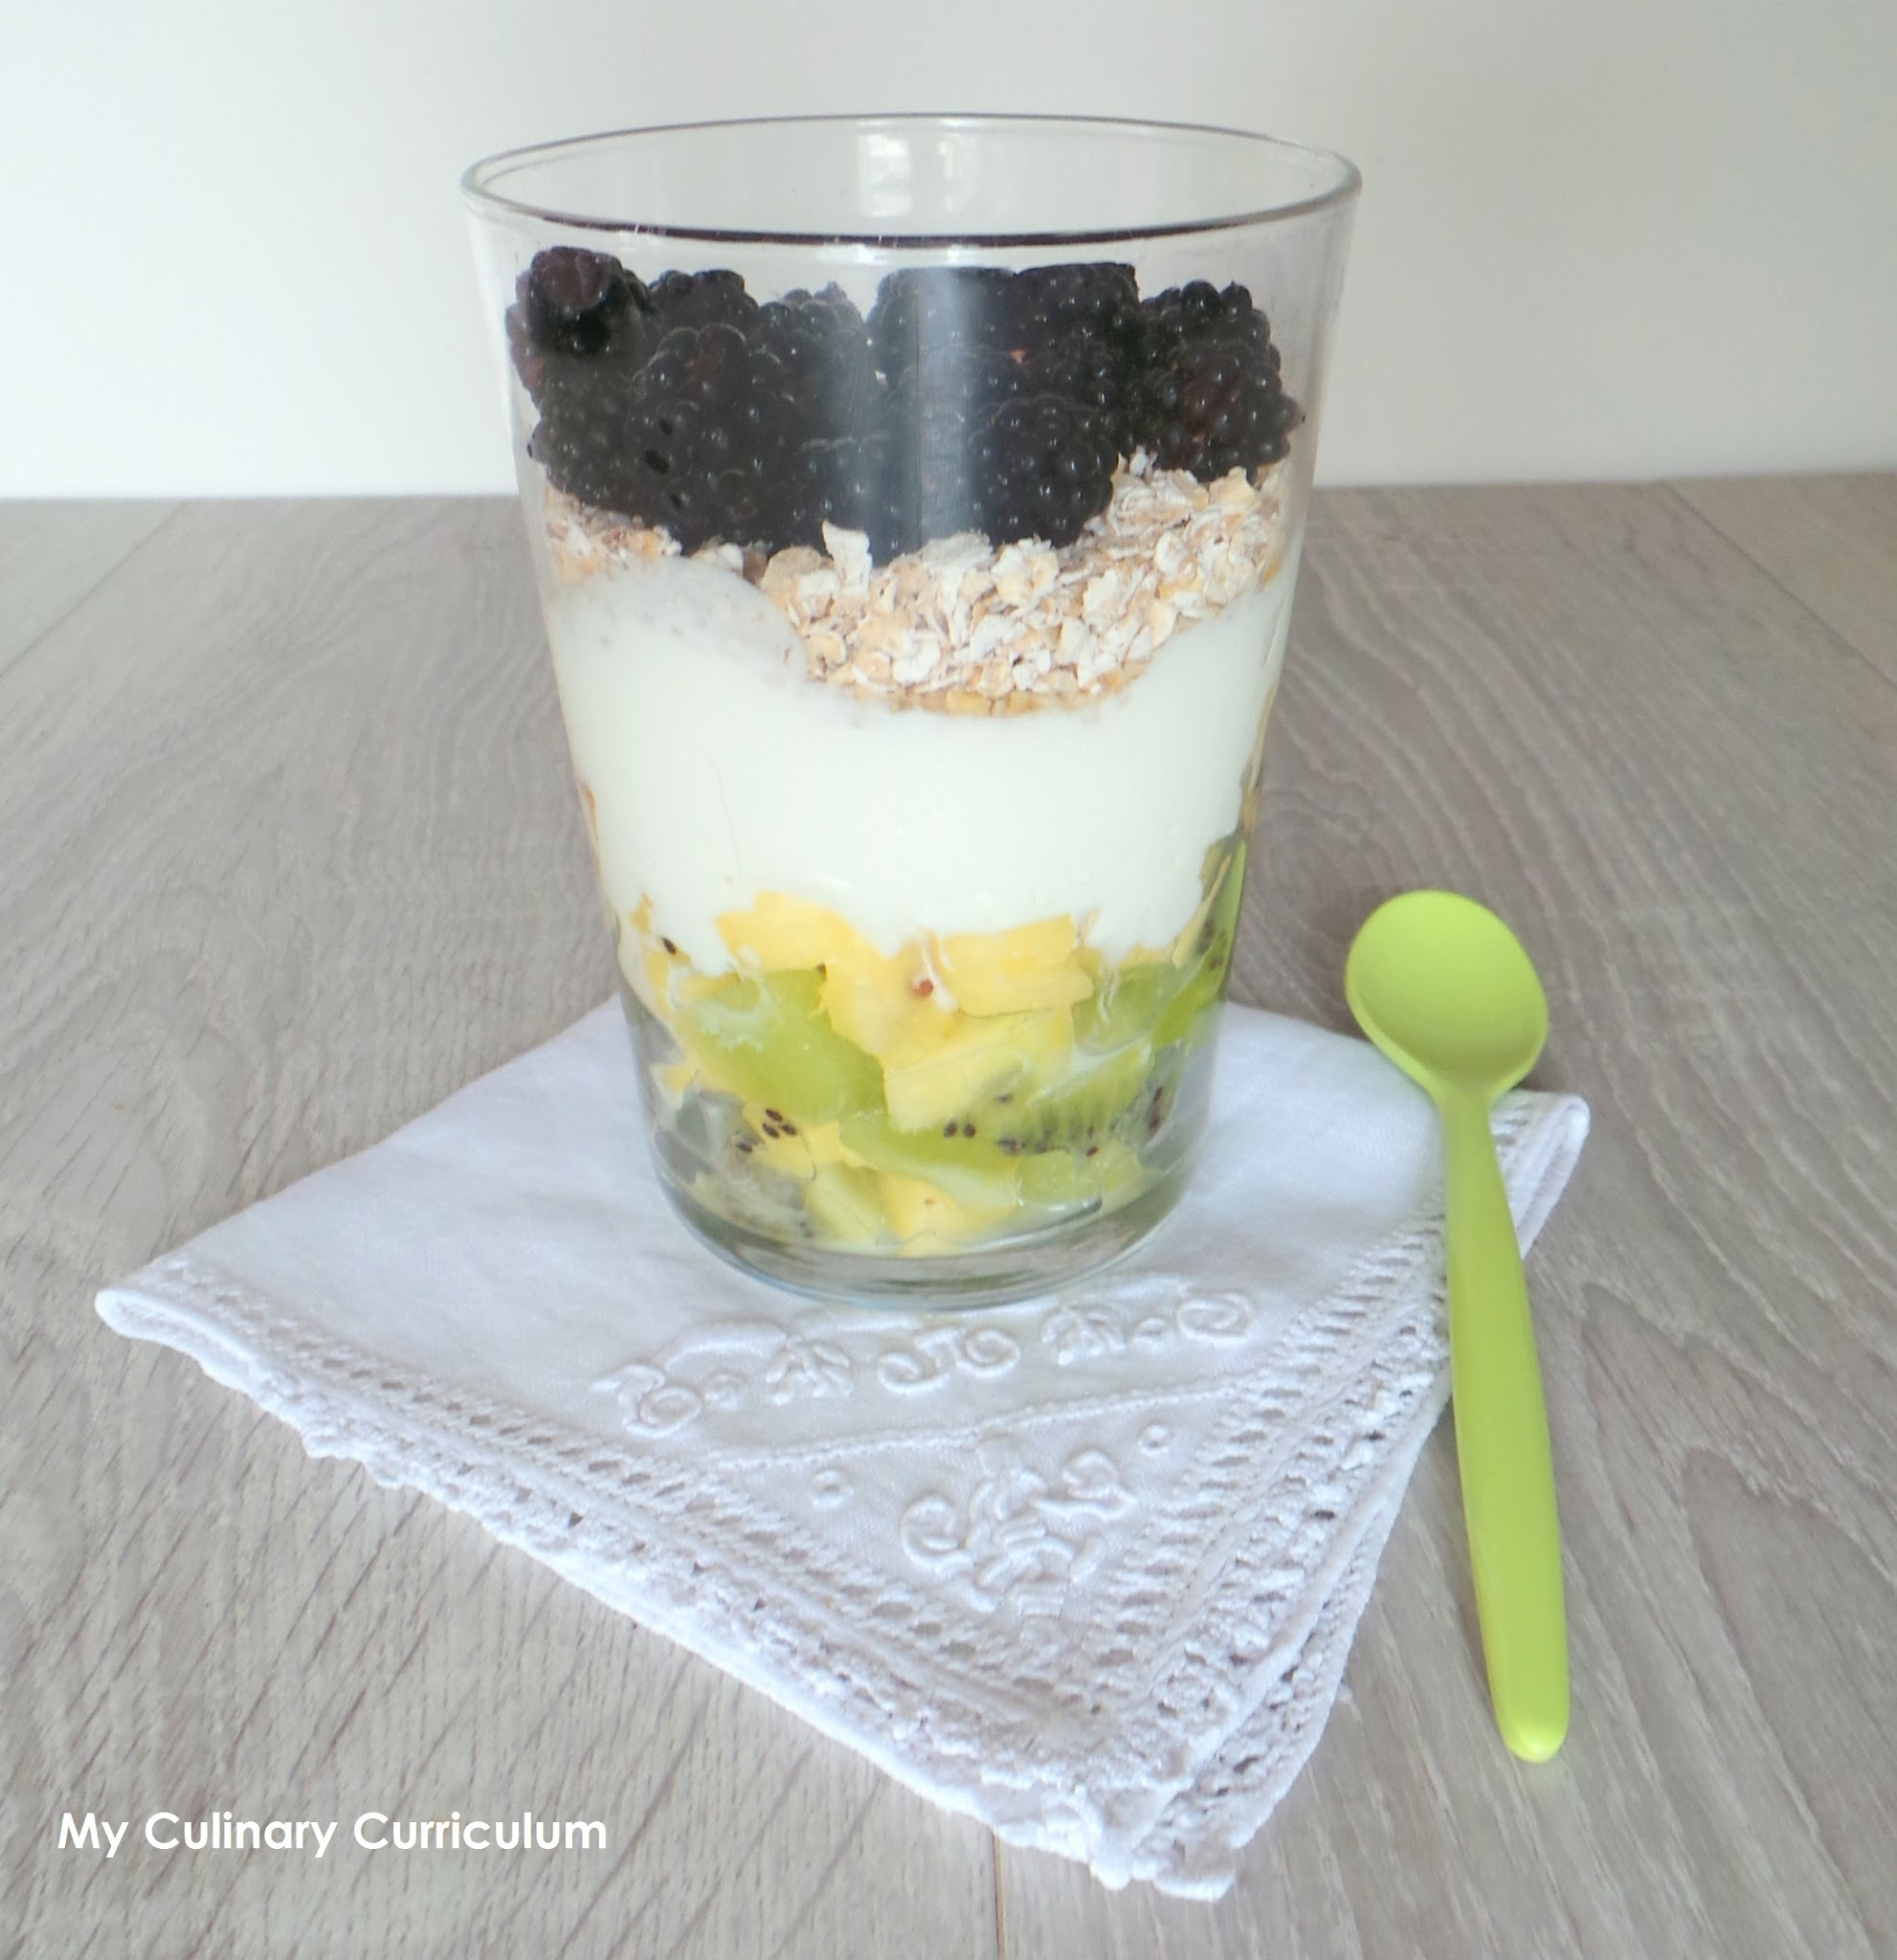 Yaourt aux fruits, sirop d'érable et flocons d'avoine (Fruit yogurt, maple syrup and oatmeal)